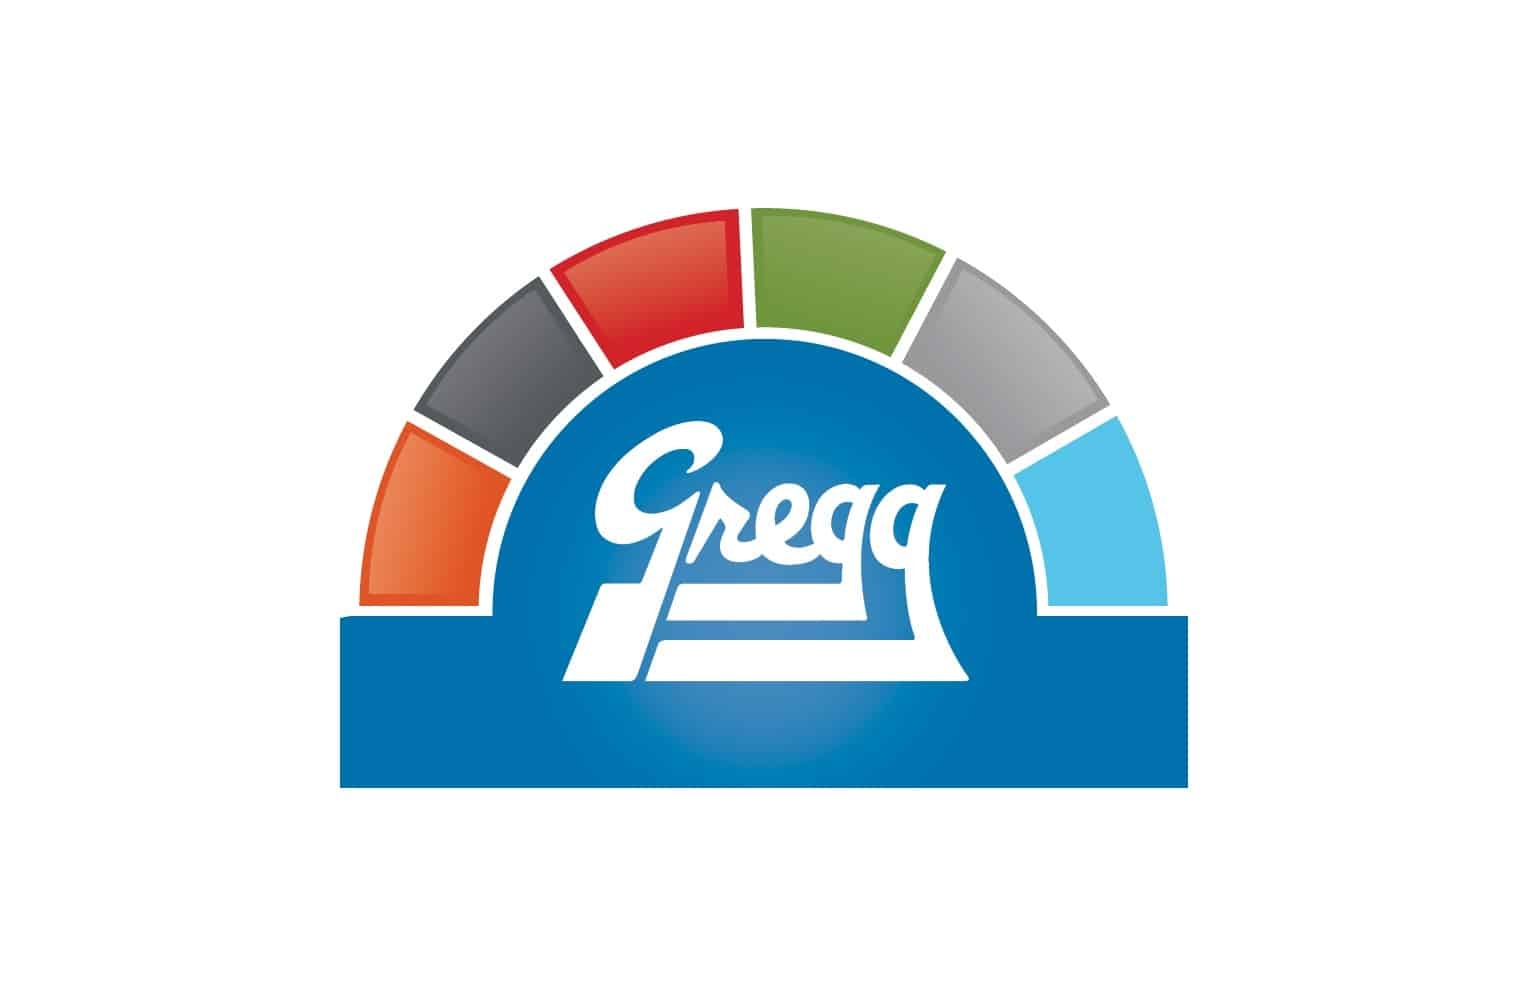 gregg distributors ltd 2019